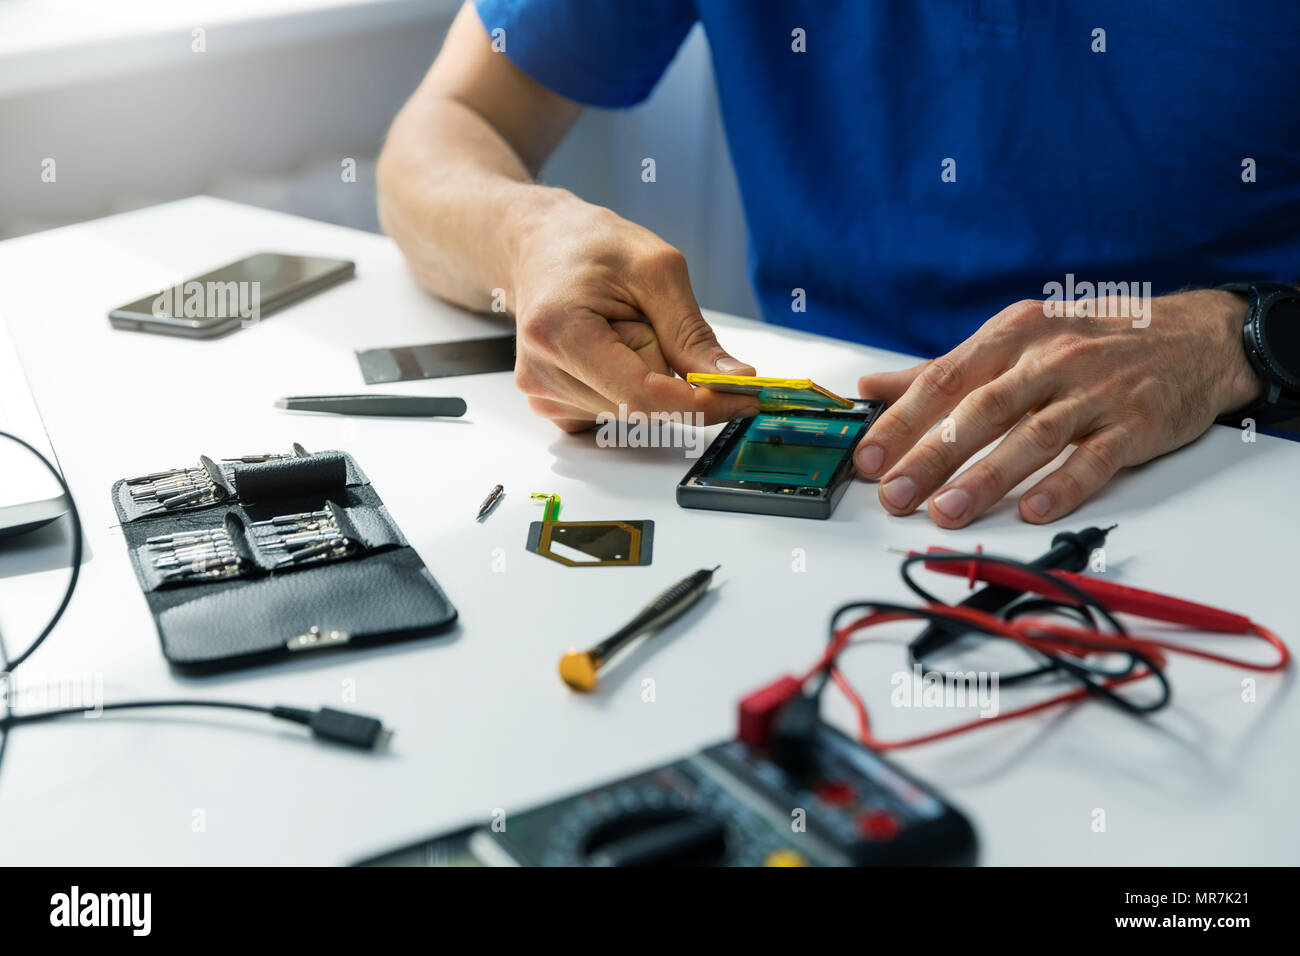 phone maintenance - technician replace the smartphone battery - Stock Image